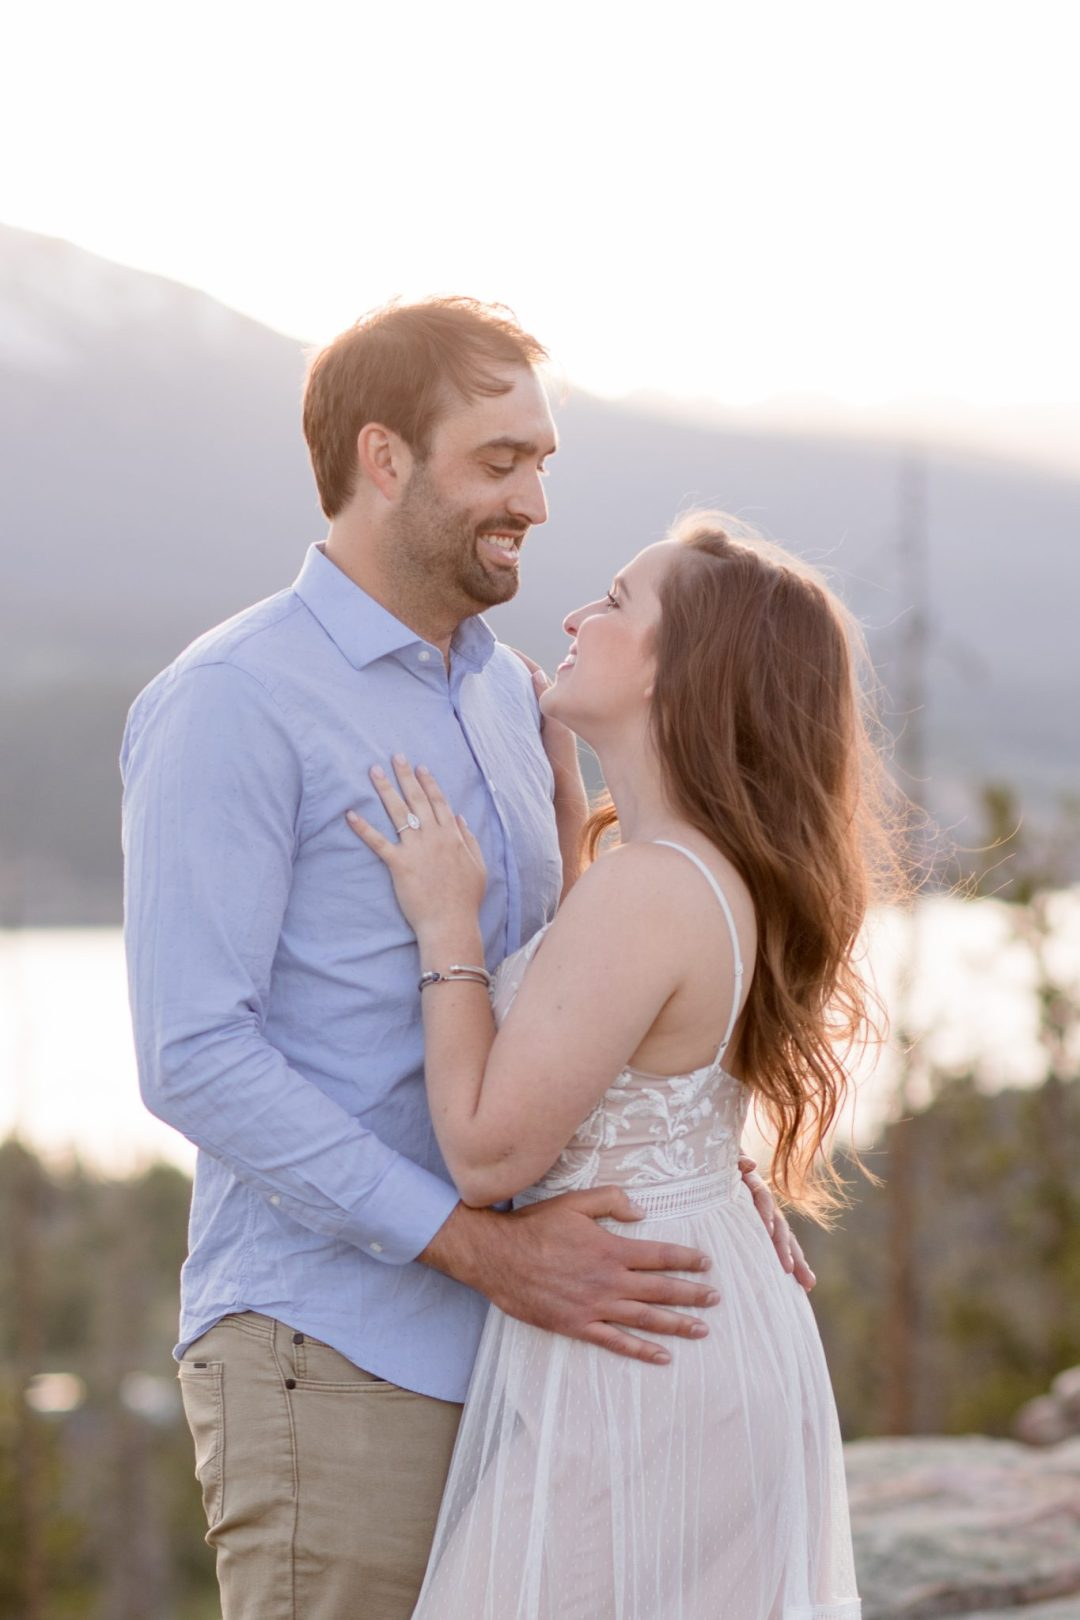 Engagement Photography in Breckenridge Colorado